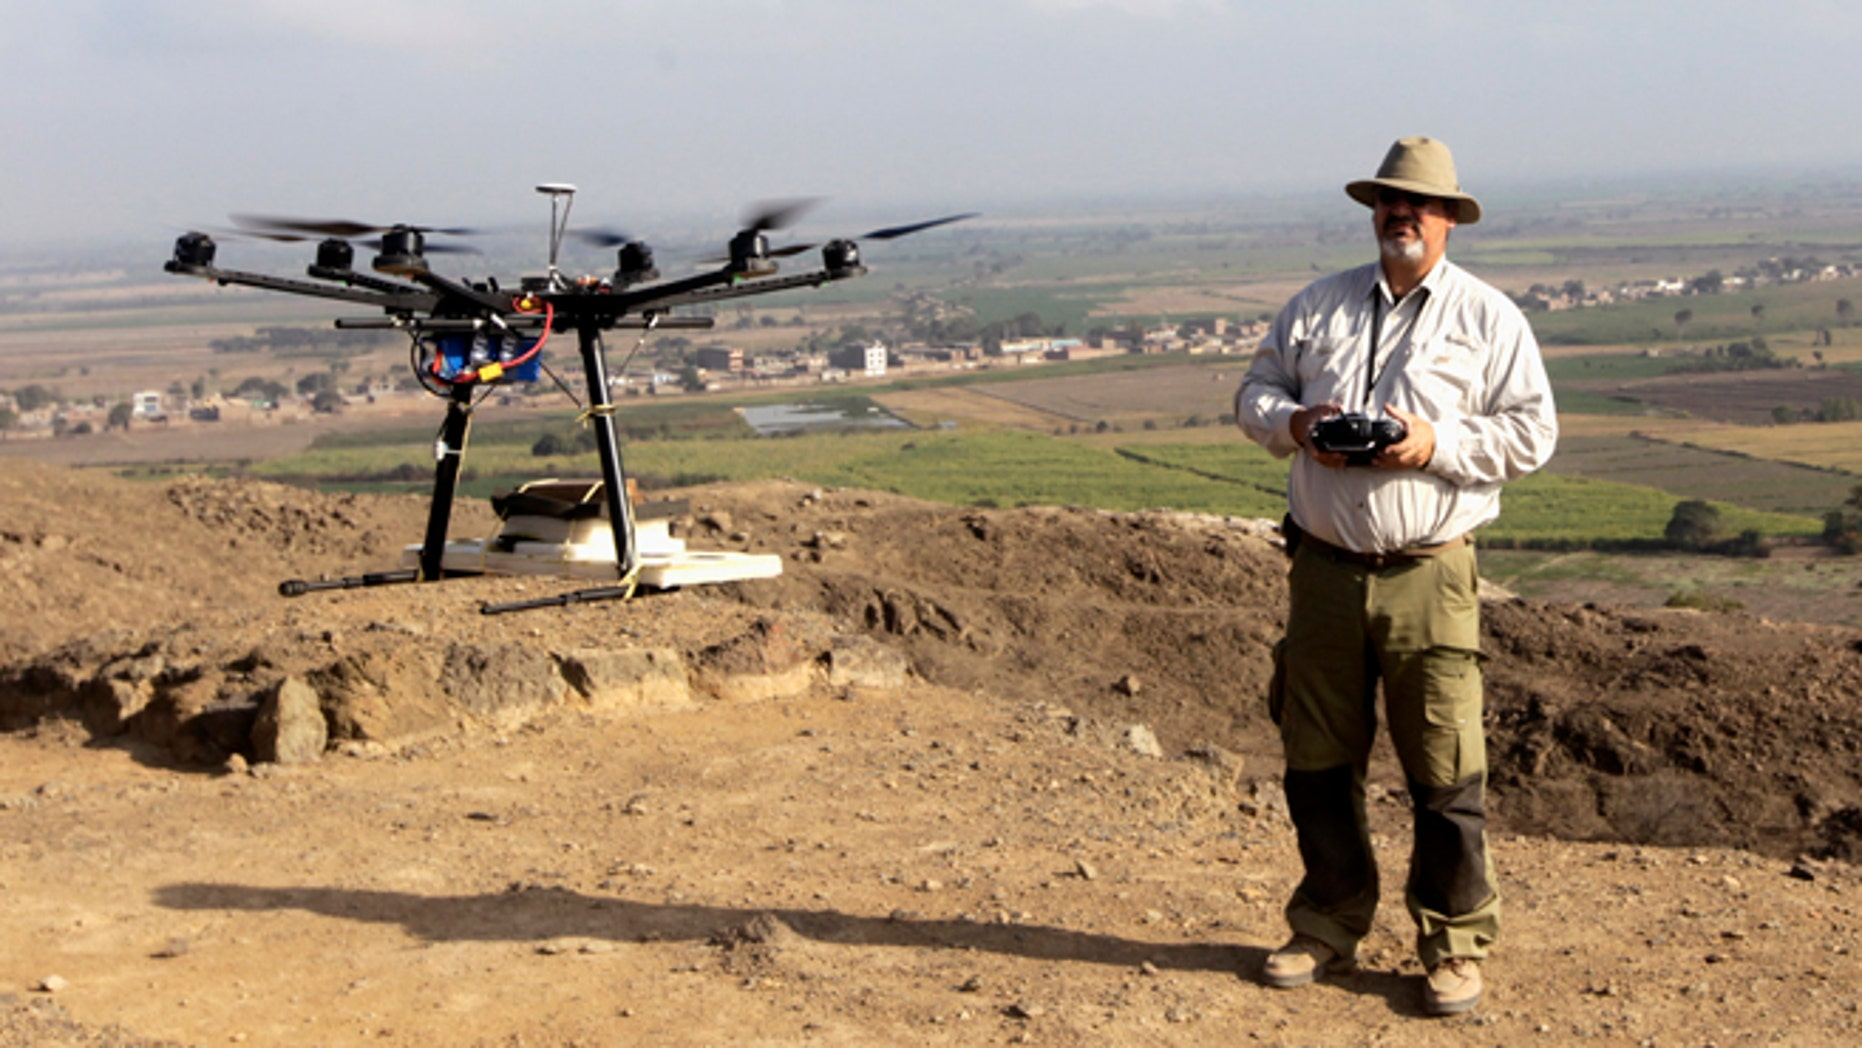 Luis Jaime Castillo, a Peruvian archaeologist with Lima's Catholic University and an incoming deputy culture minister, flies a drone over the archaeological site of Cerro Chepen in Trujillo August 3, 2013.